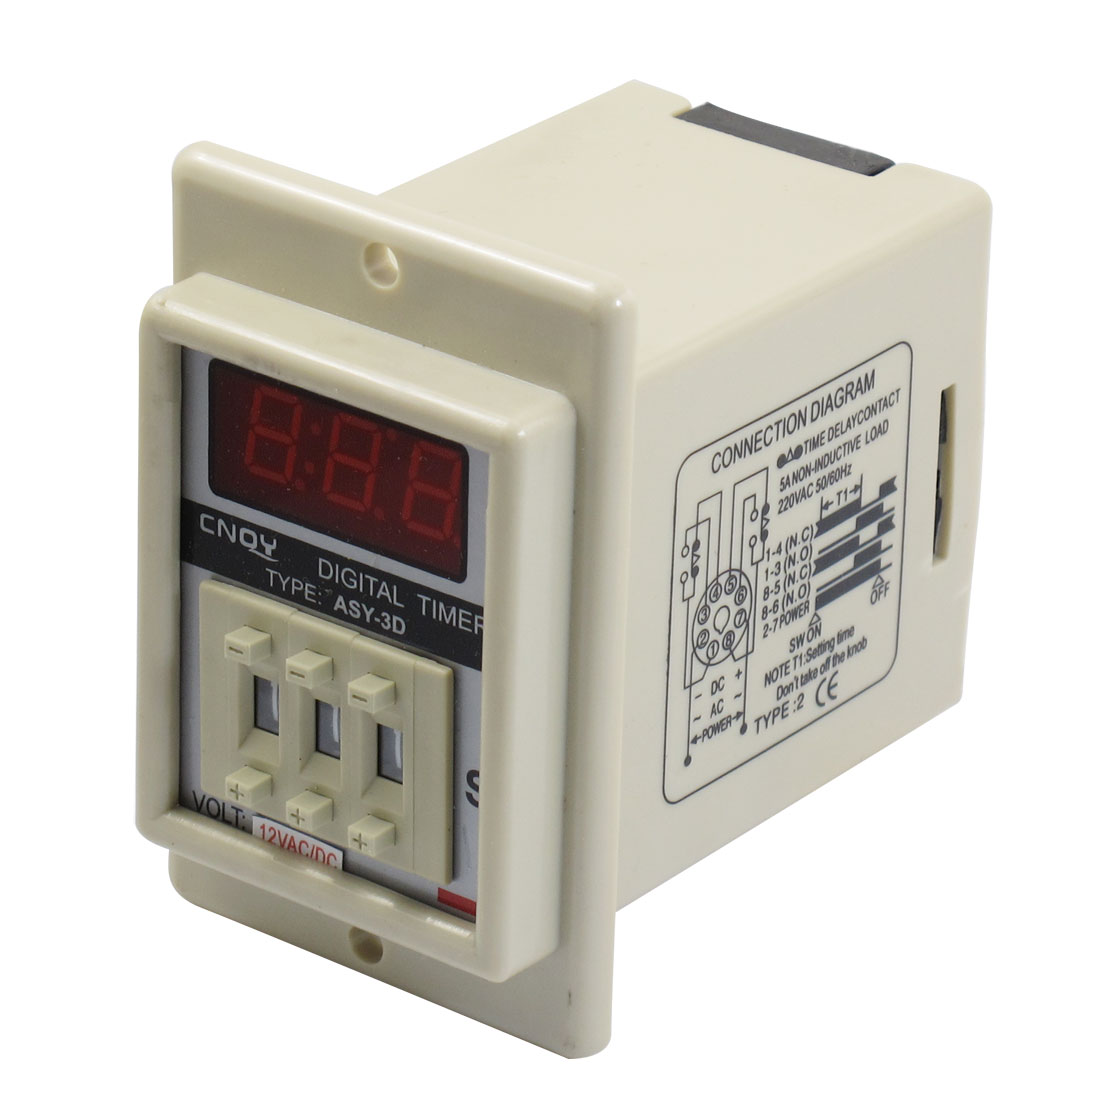 AC/DC 12V 8 Pin 0.01-9.99 Second Digital Timer Time Delay Relay Beige ASY-3D